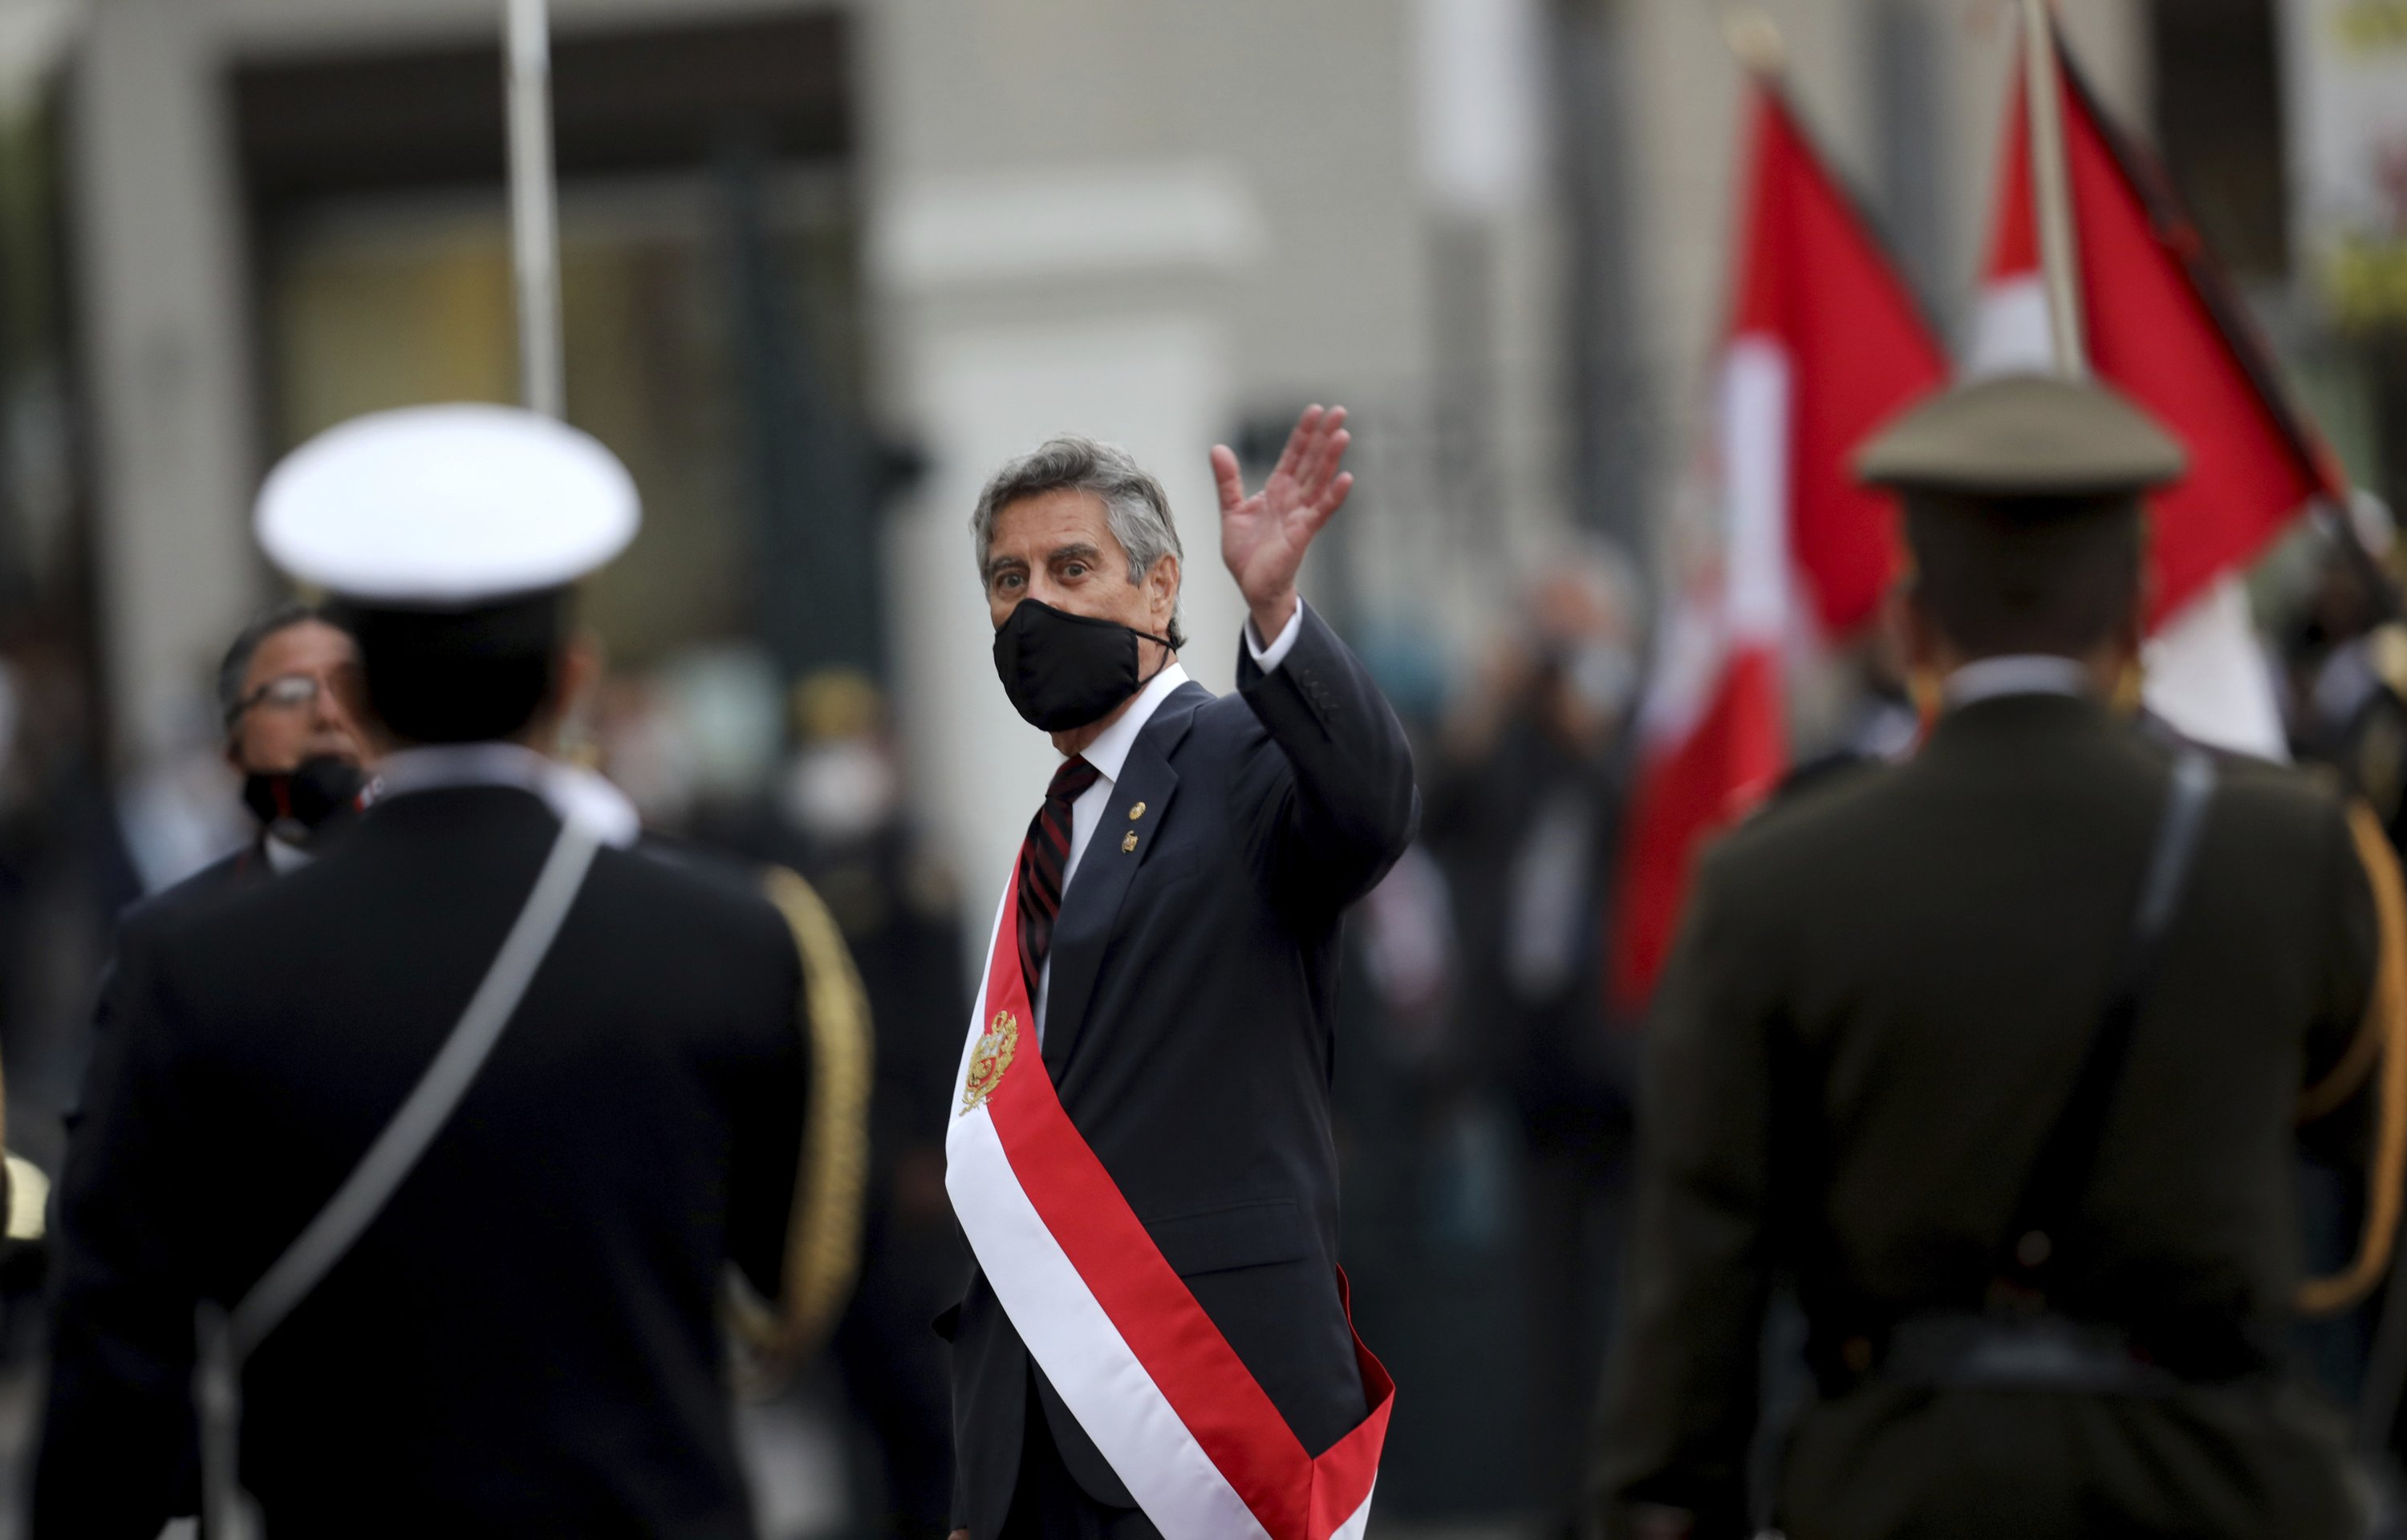 Peruvians get 3rd president in a week amid cautious hopes – The Associated Press